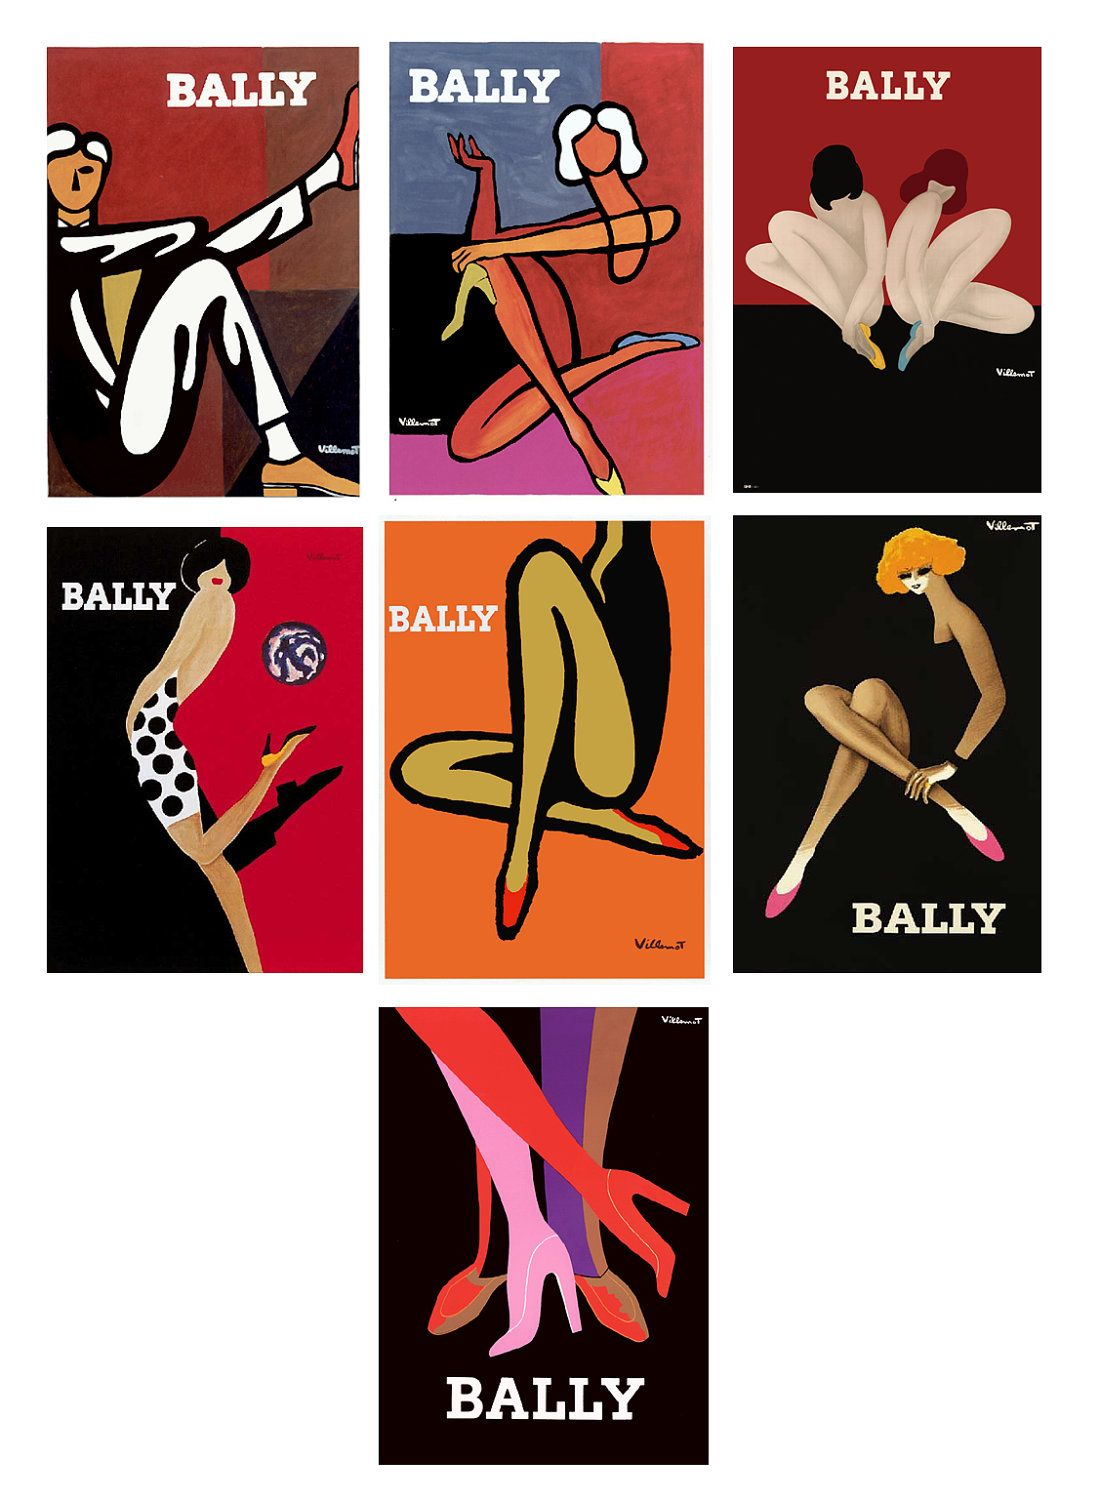 large framed bally poster by jessicannesmyth on etsy my